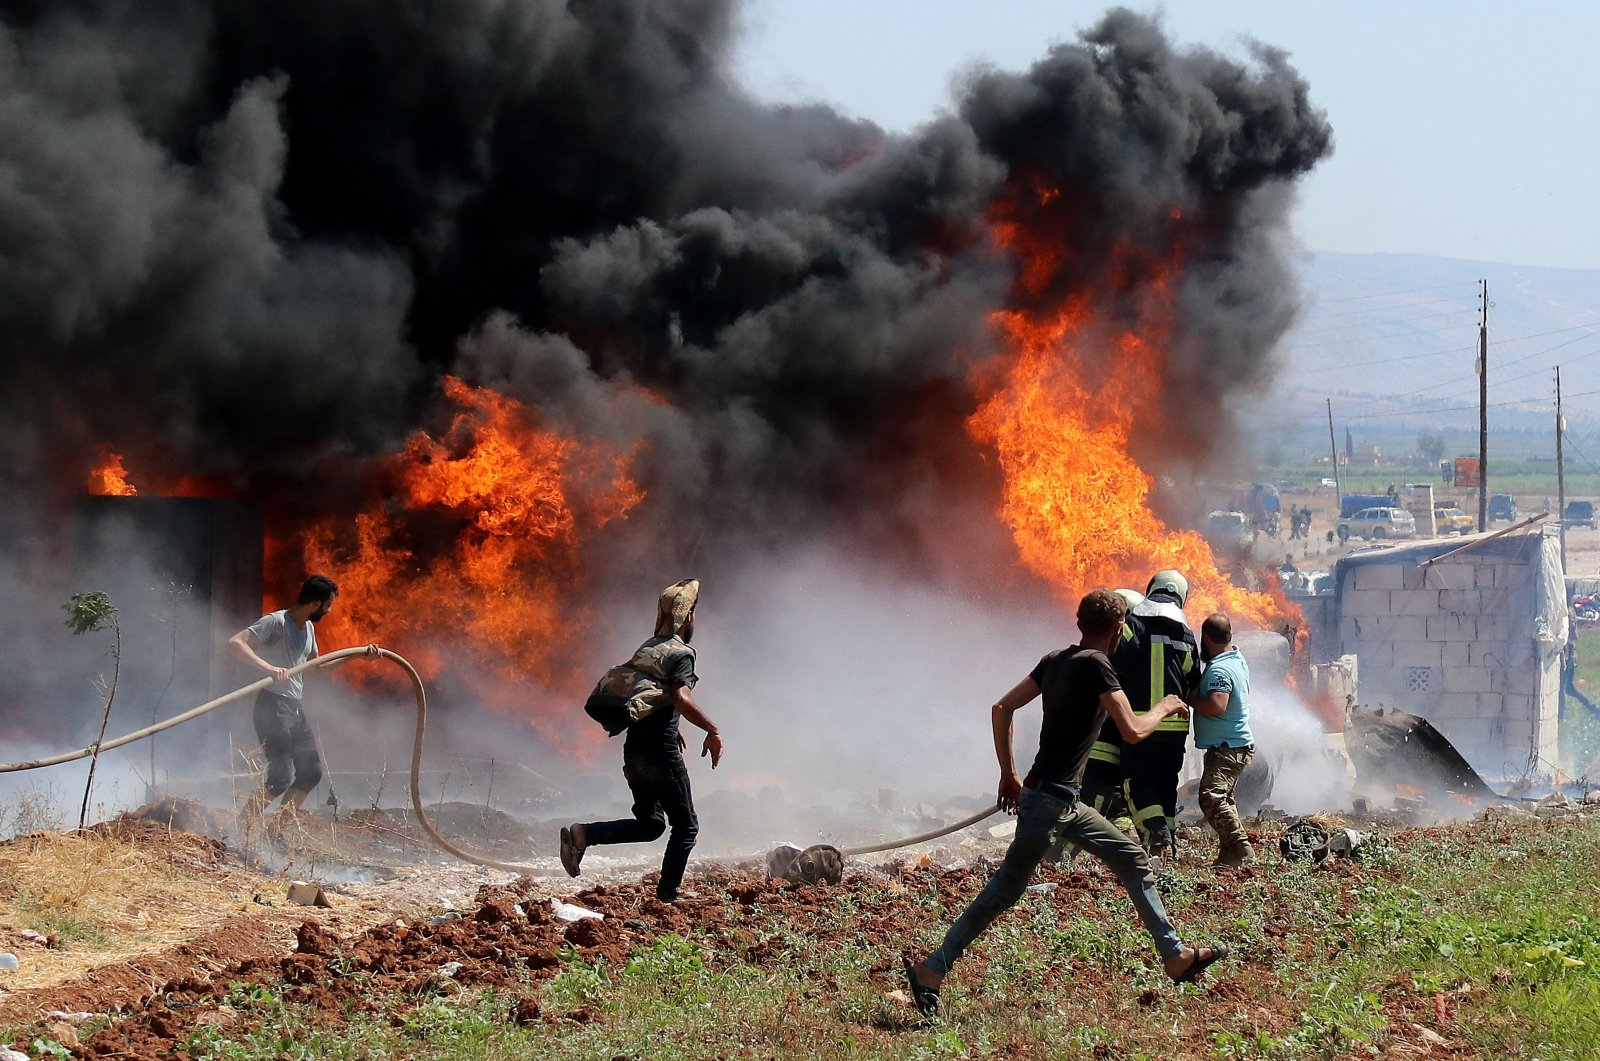 Civilians and members of the White Helmets rush to put out a fire caused by reported artillery bombardment by Syrian regime forces in northern Afrin, Syria, Aug. 18, 2021. (AFP Photo)